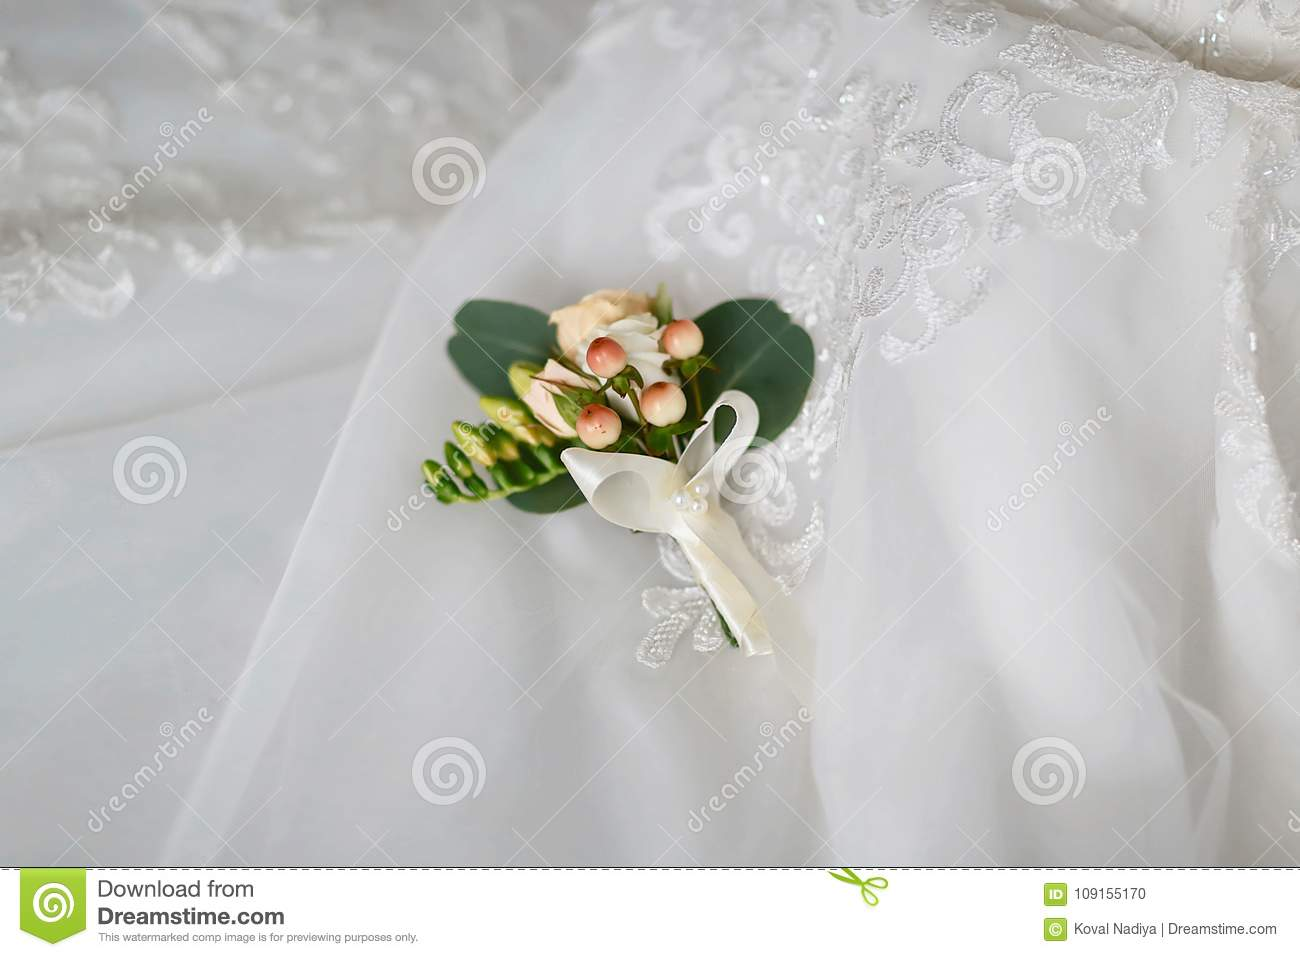 Beautiful Delicate Wedding Boutonniere With Creamy And White